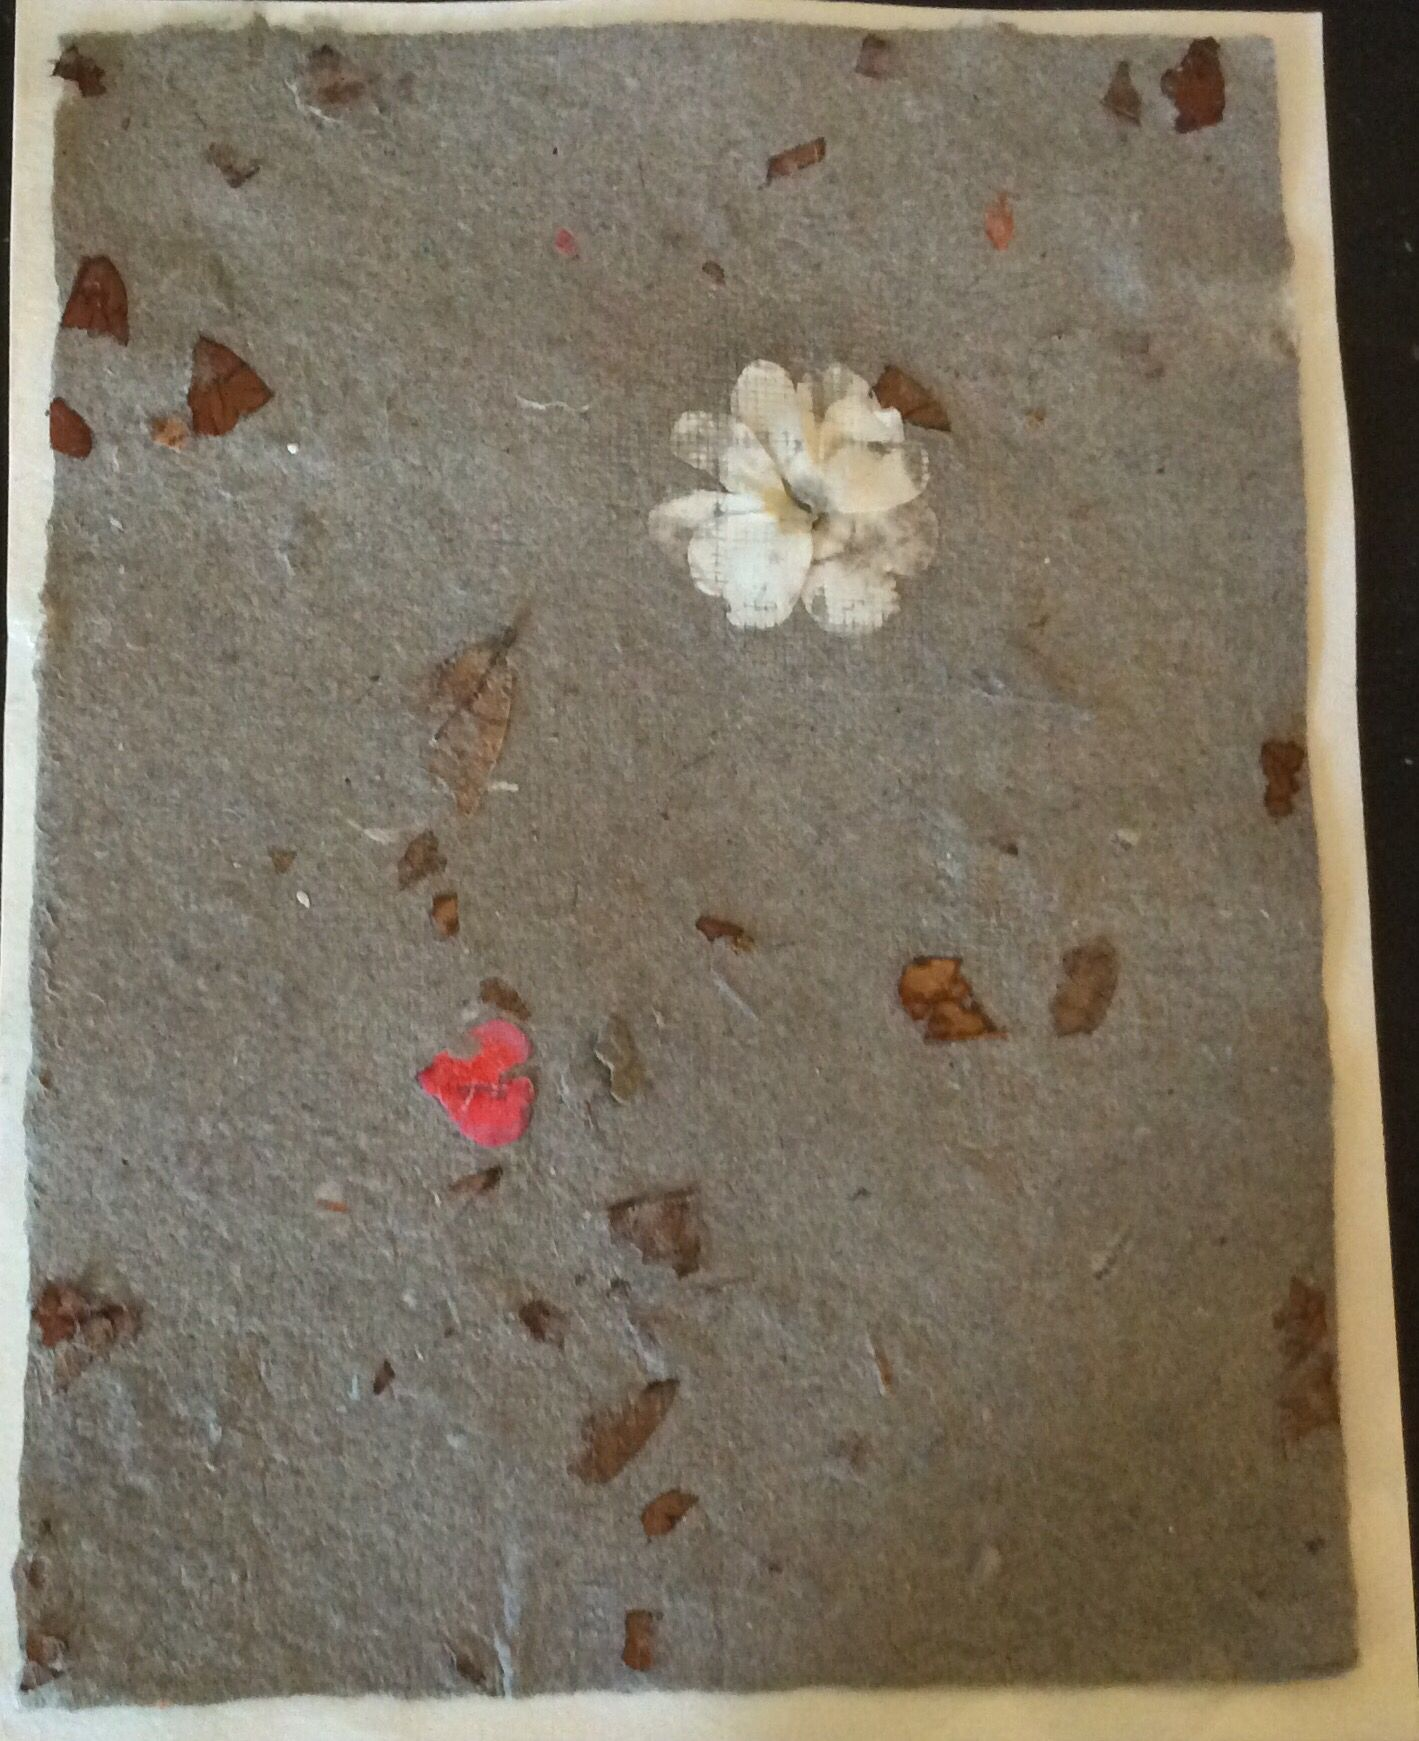 Handmade paper created with dryer lint and egg carton, embedded with flowers.  This paper is still wet and will dry a lighter shade.  Created by Lily DuVeaux.